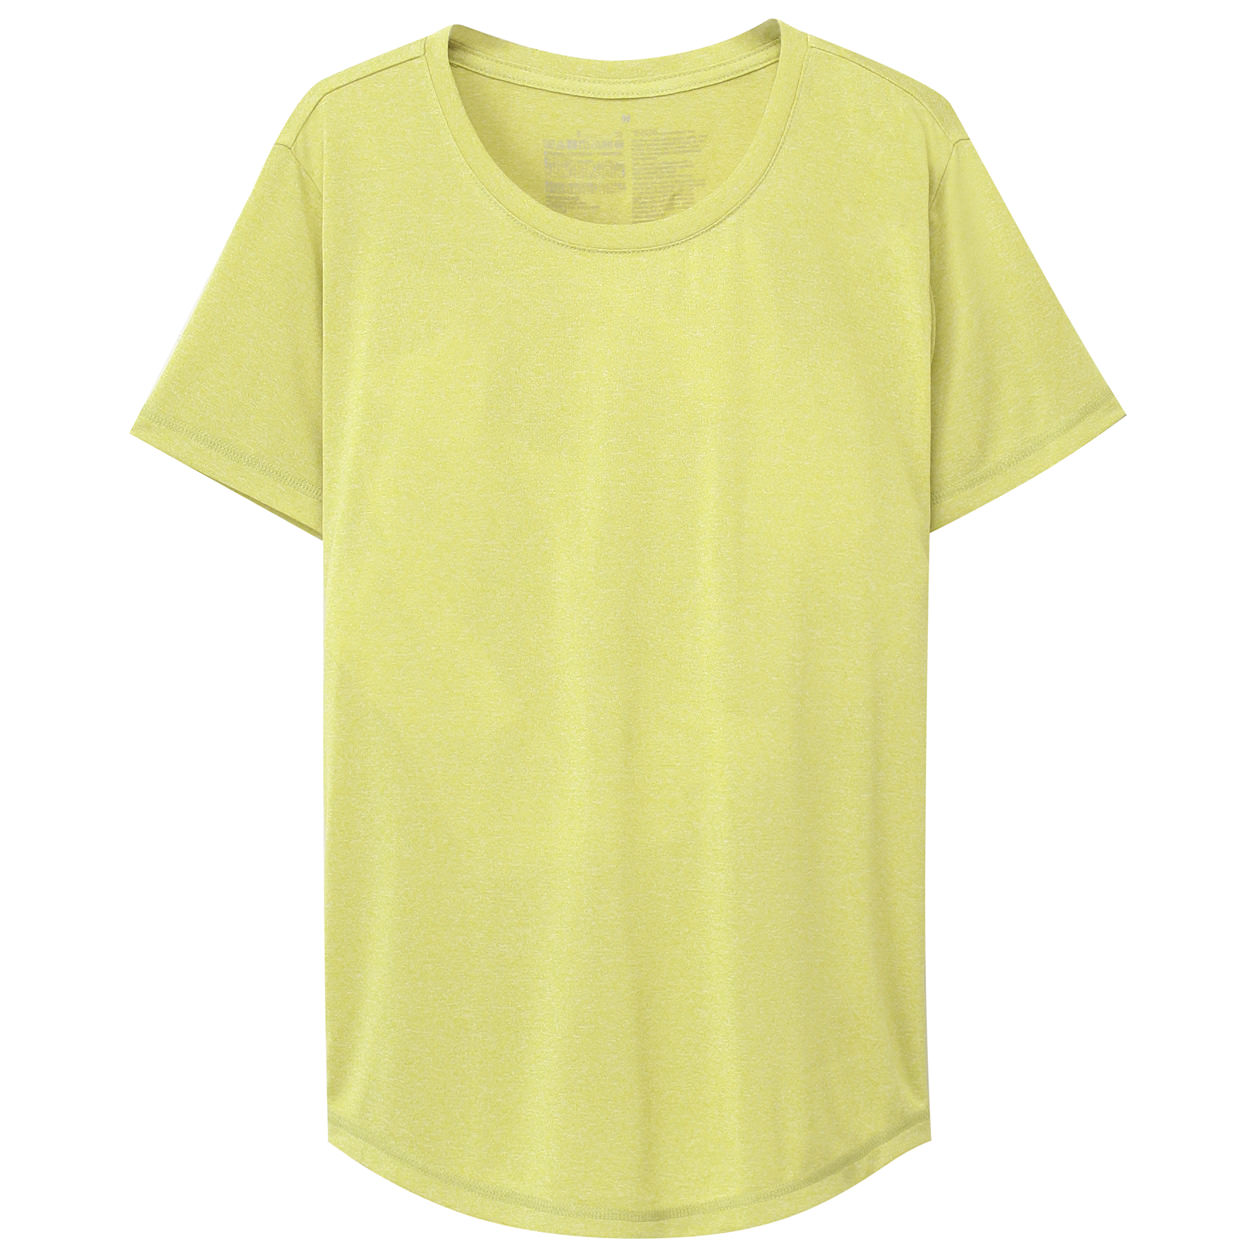 muji to run quick dry uv protection s s t shirt lady s. Black Bedroom Furniture Sets. Home Design Ideas